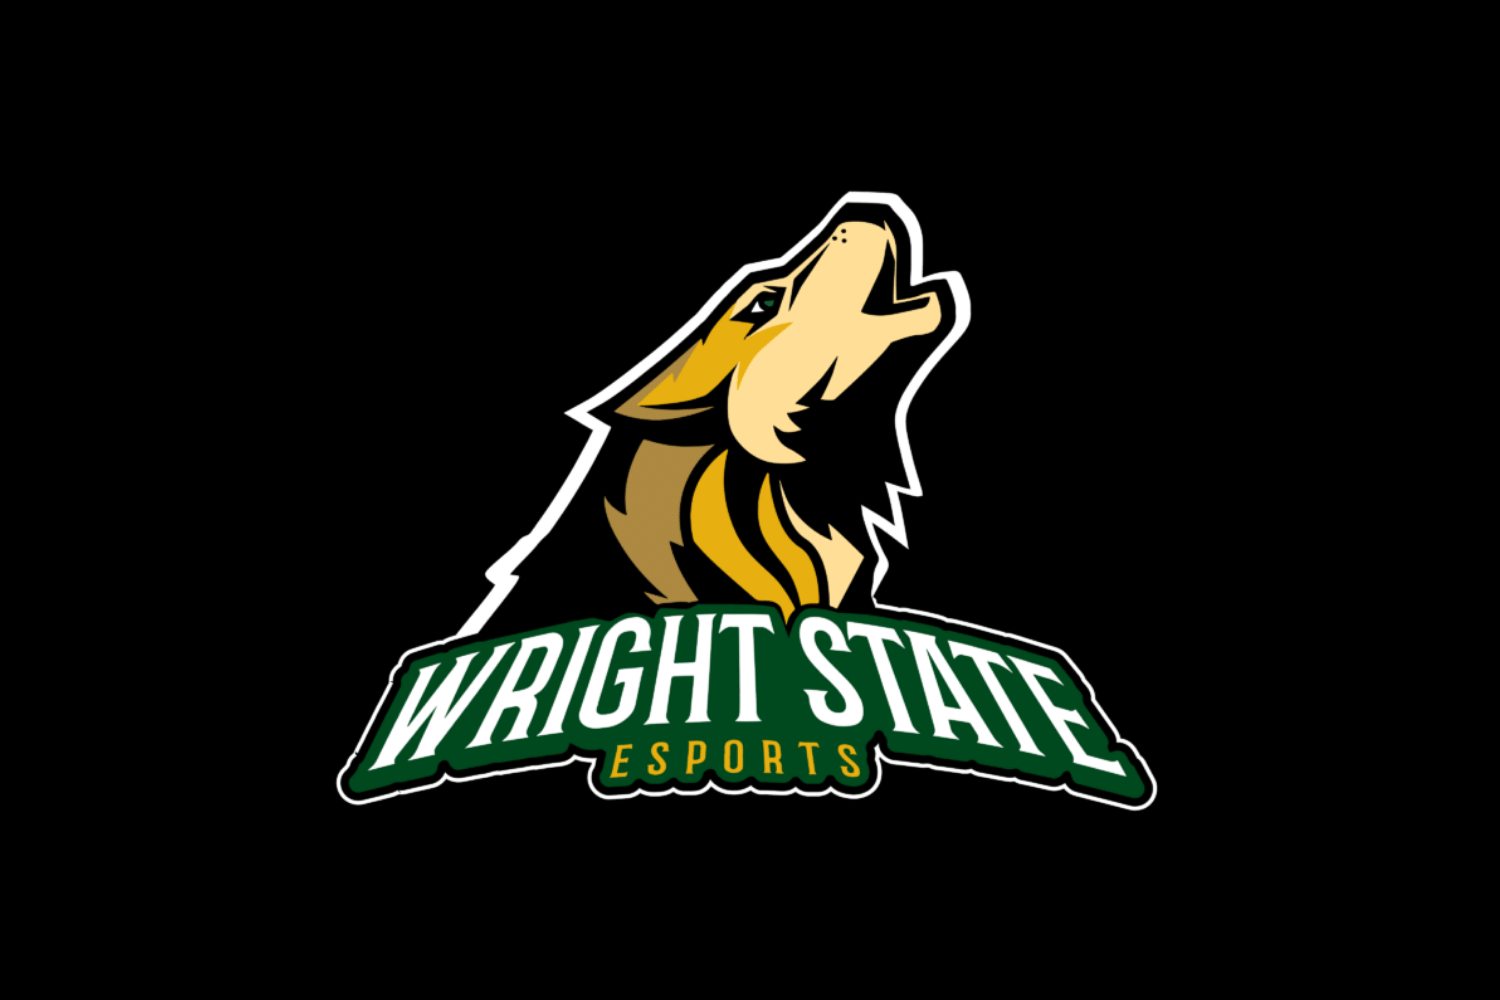 Logo of the Collegiate eSports club at Wright State University